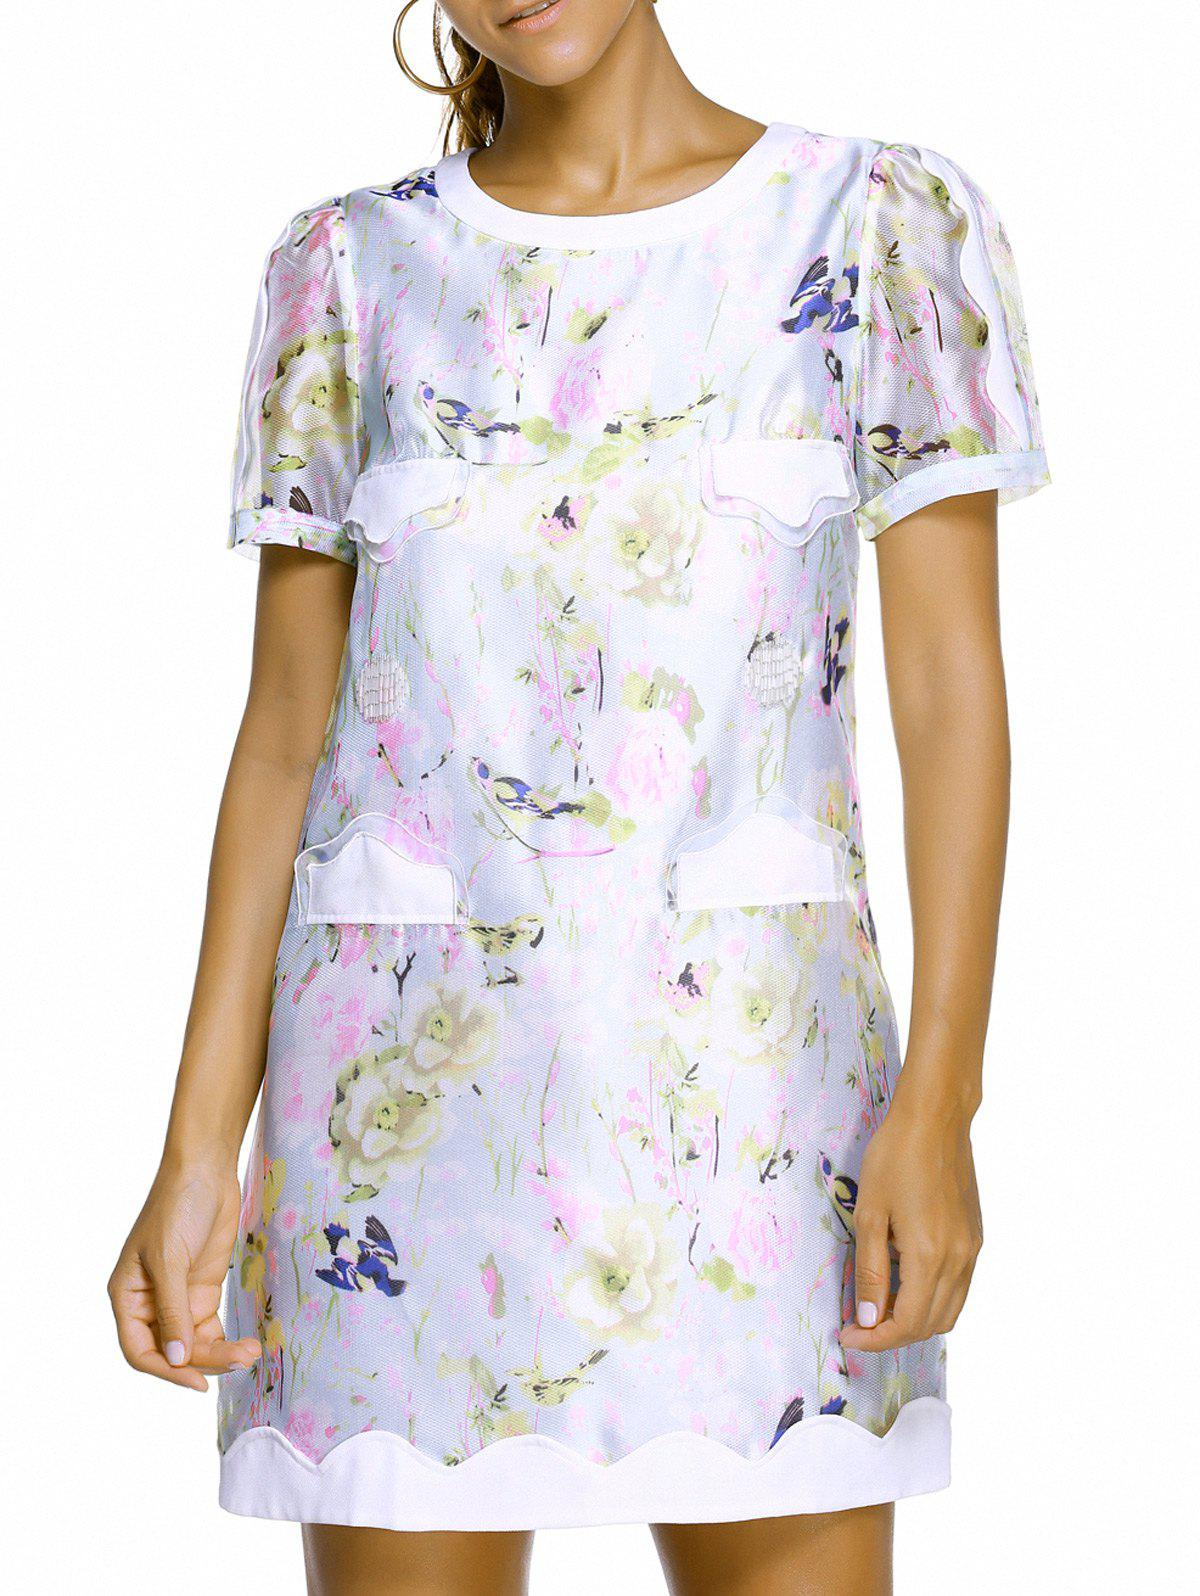 Charming Short Sleeve Round Neck Spliced Floral Print Women's Dress - WHITE XL